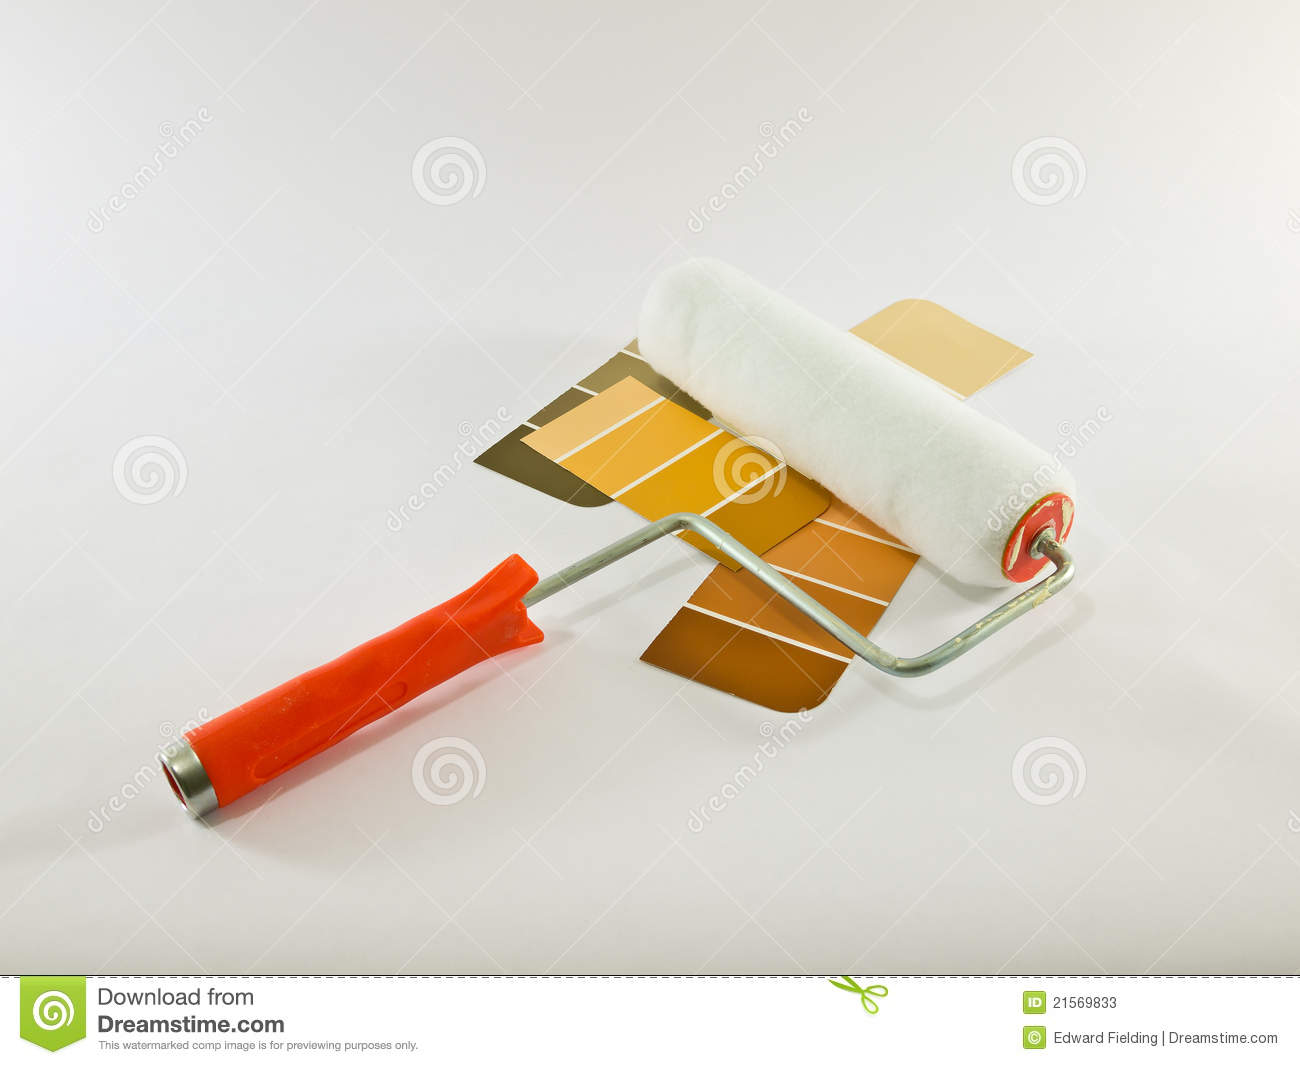 Home improvement stock photos image 21569833 for A to z home improvements